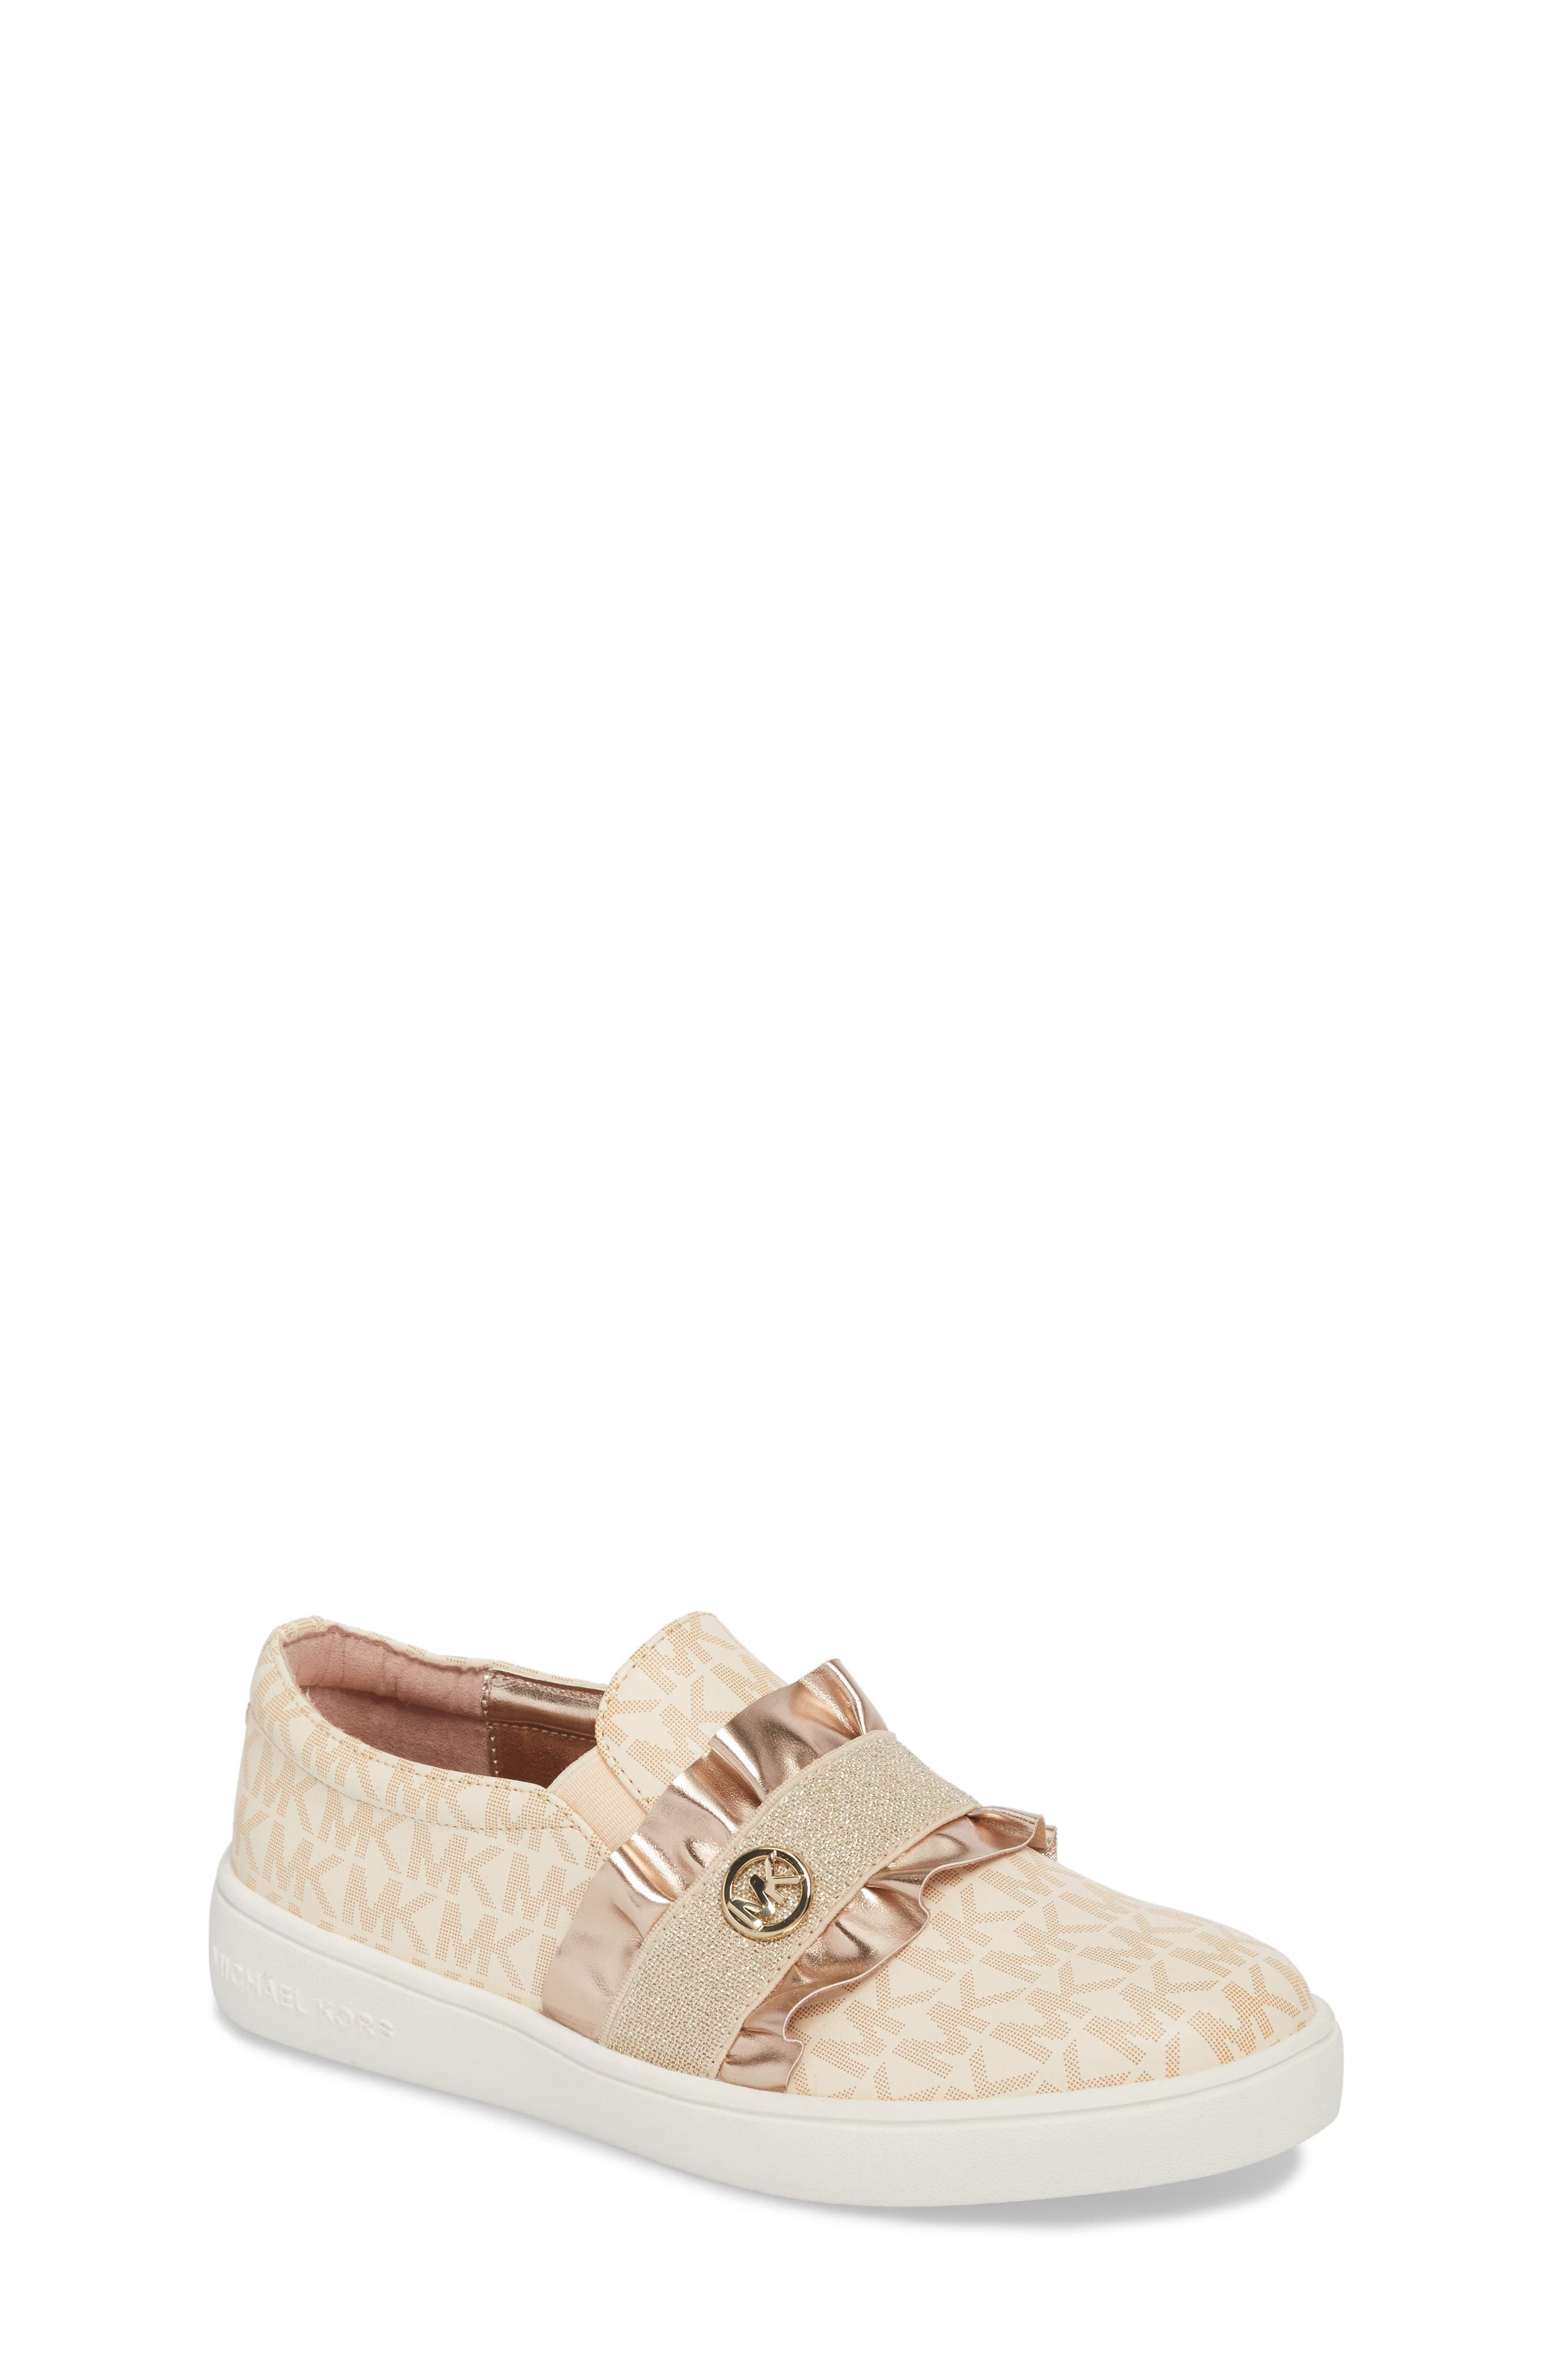 Ivy Riff Ruffle Sneaker,                         Main,                         color, ROSE GOLD